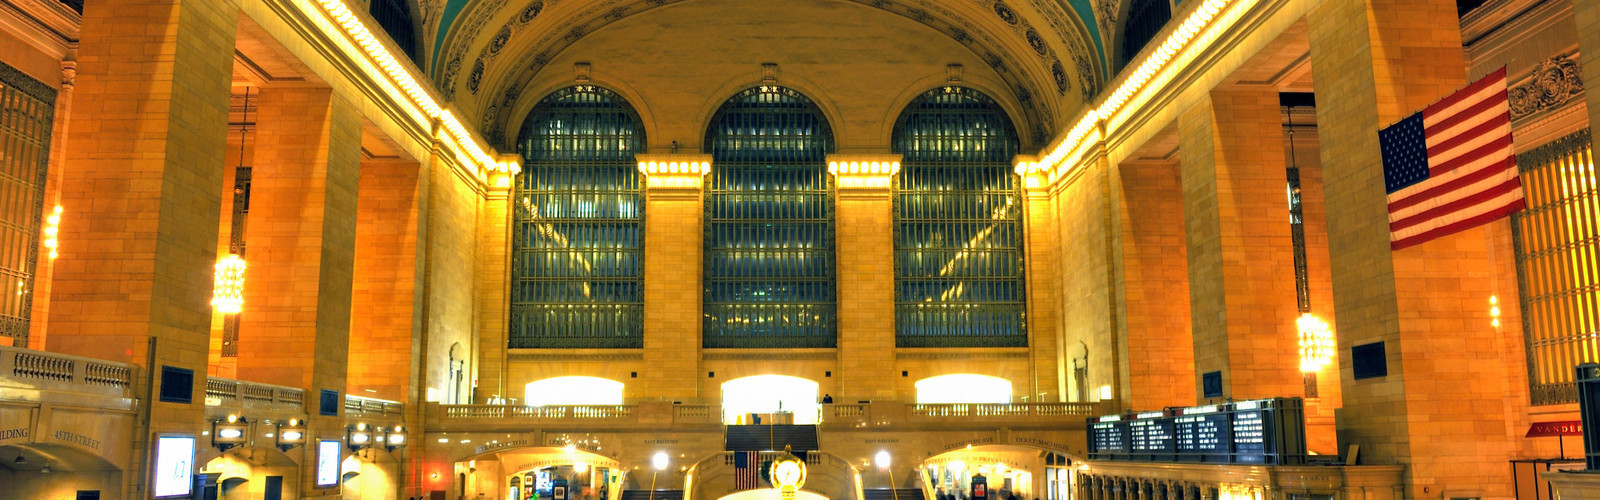 Grand Central Station Hotel - Westgate New York Grand Central